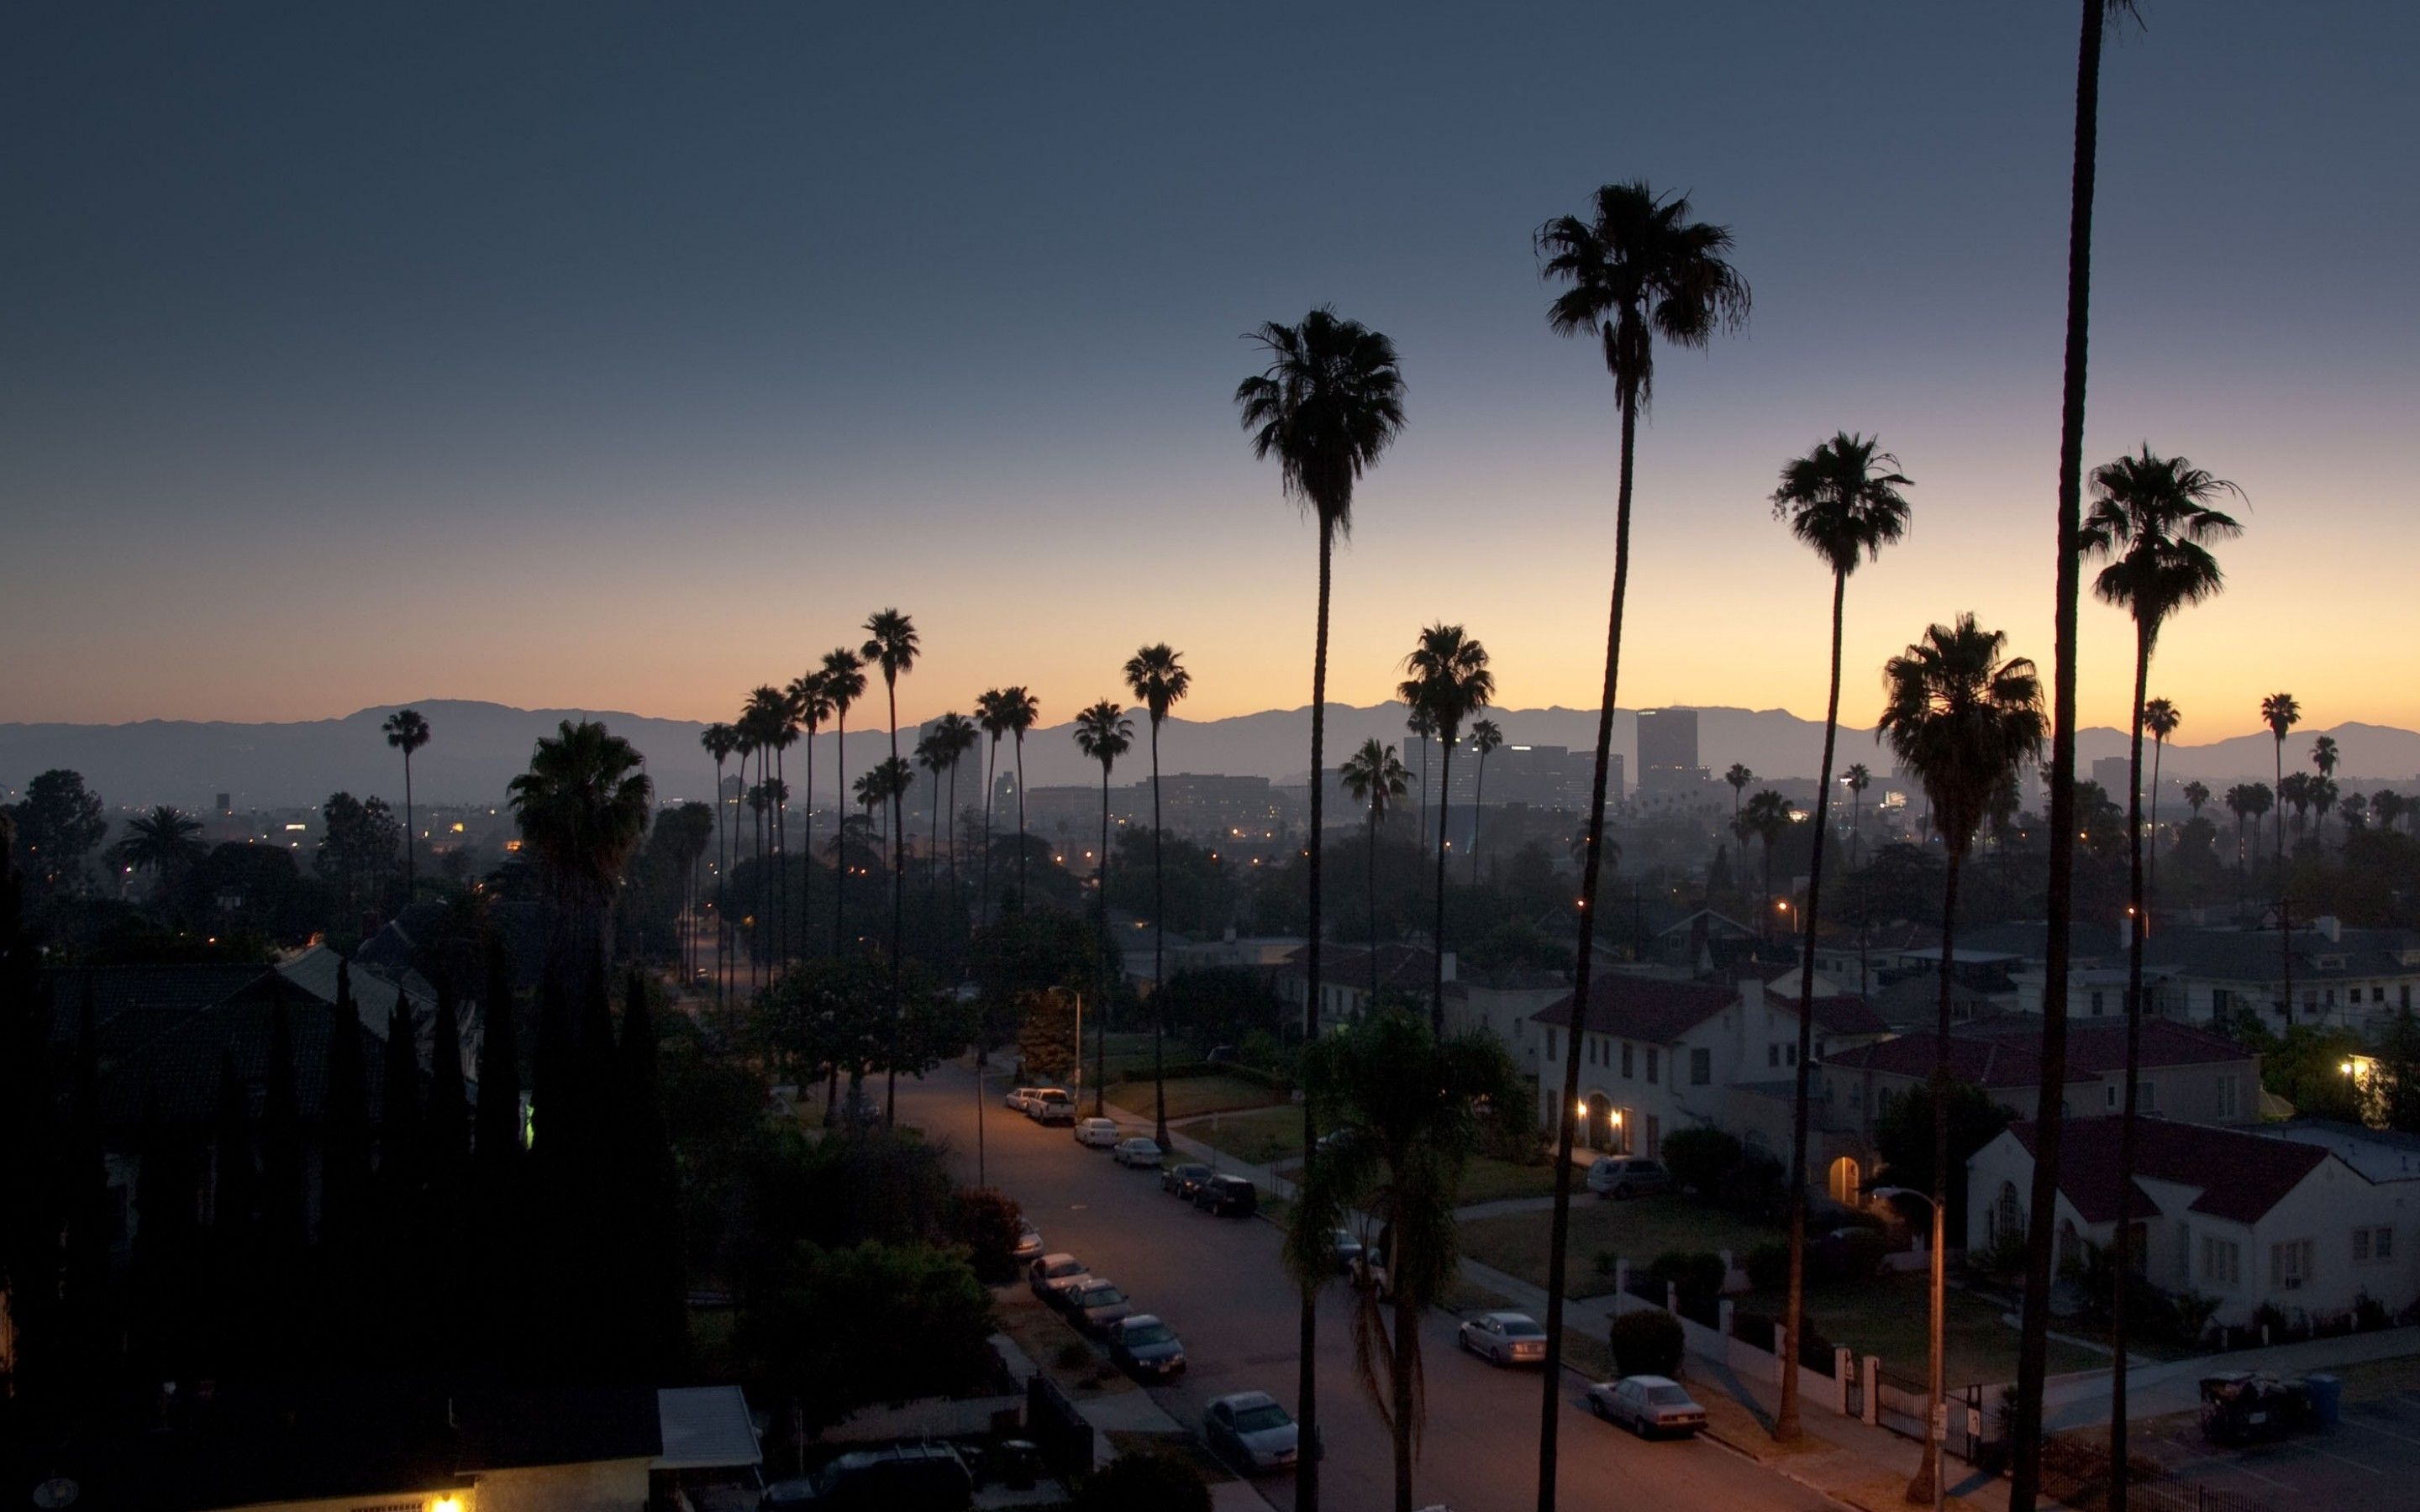 10 Latest Hd Los Angeles Wallpaper FULL HD 1080p For PC Background